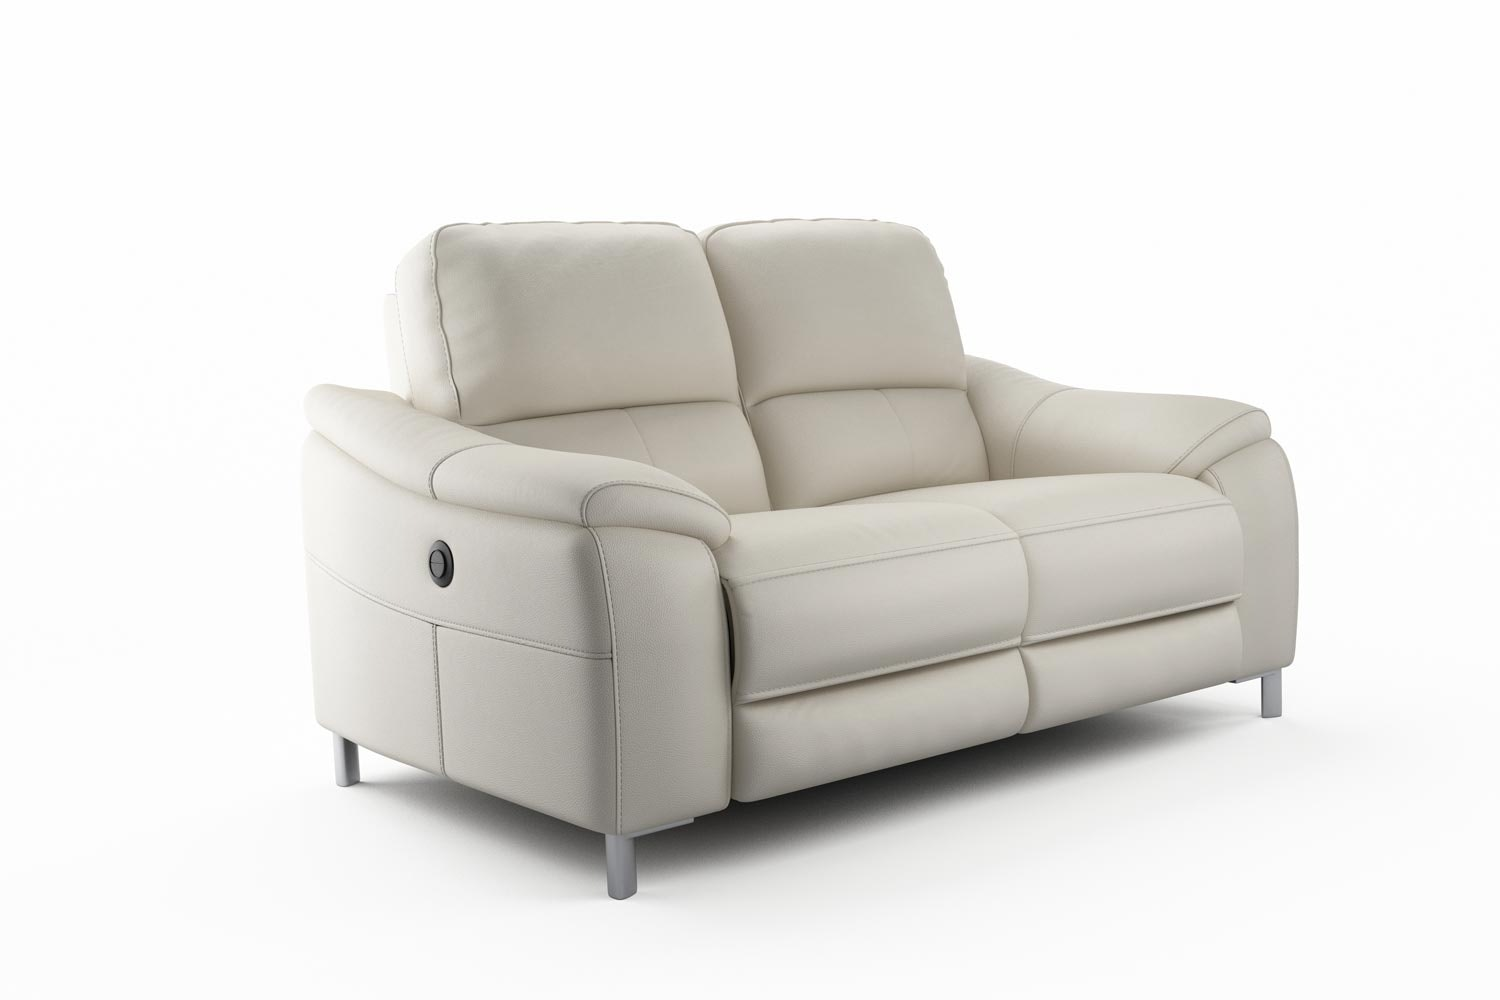 Yvezza 2 Seater Electric Recliner Sofa| Grey